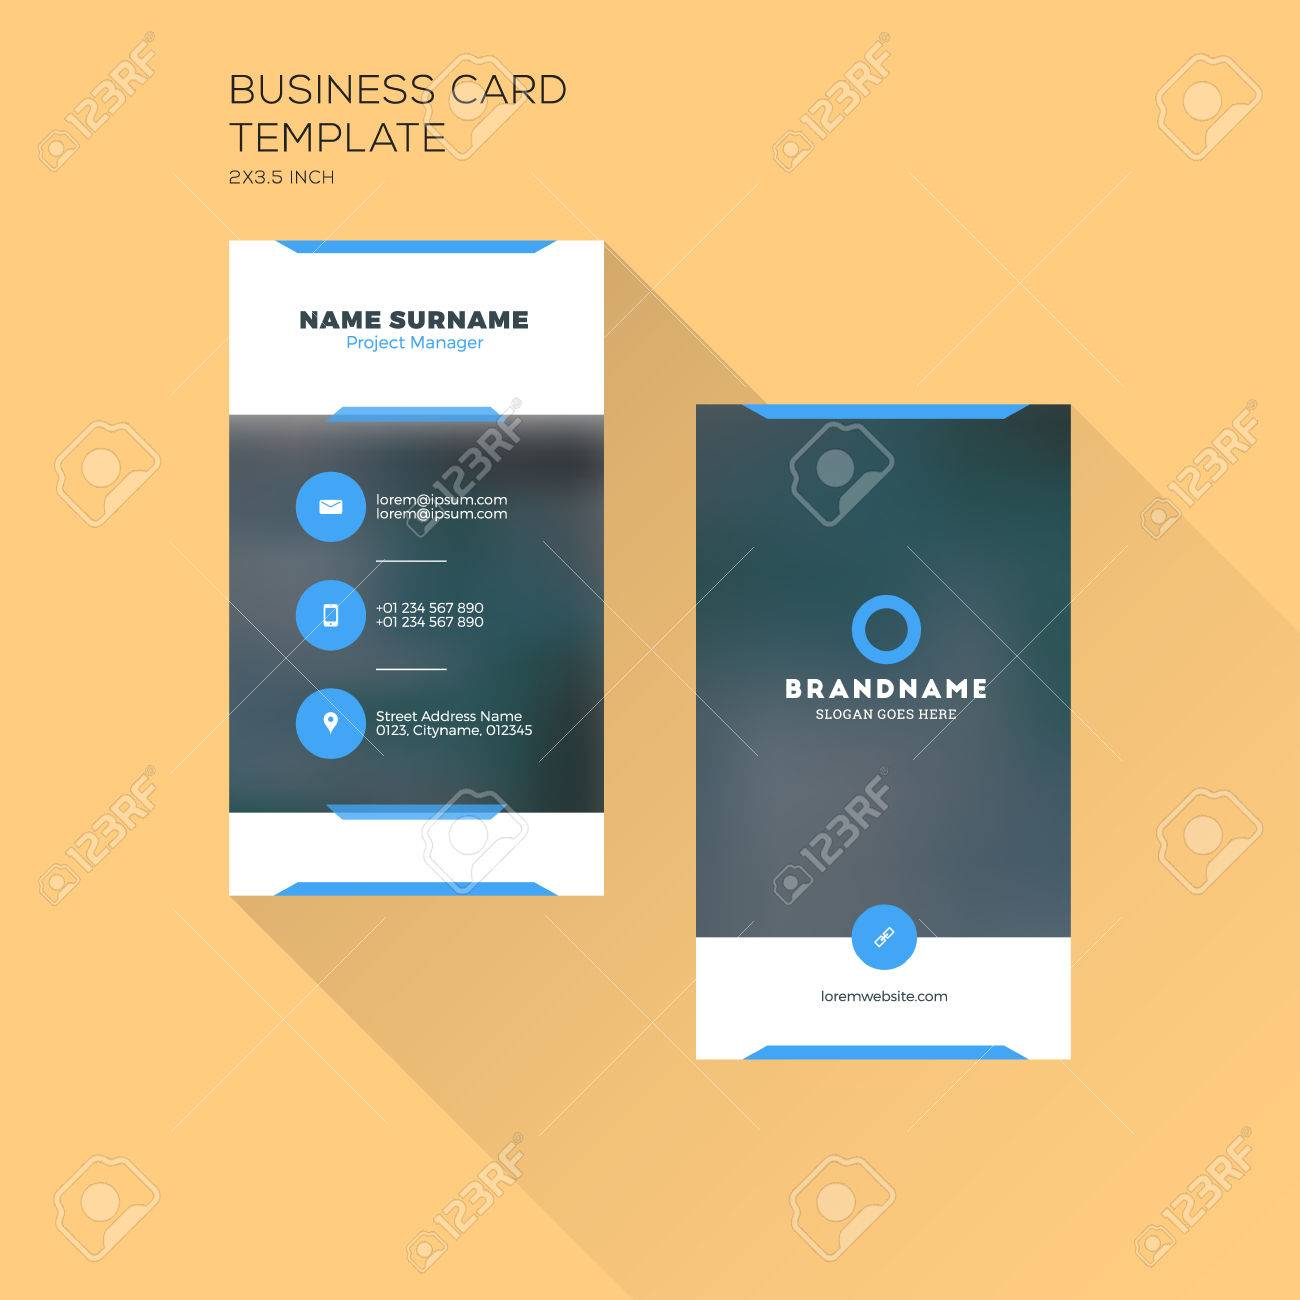 Vertical business card print template personal business card vector vertical business card print template personal business card with company black and blue colors clean flat design illustration cheaphphosting